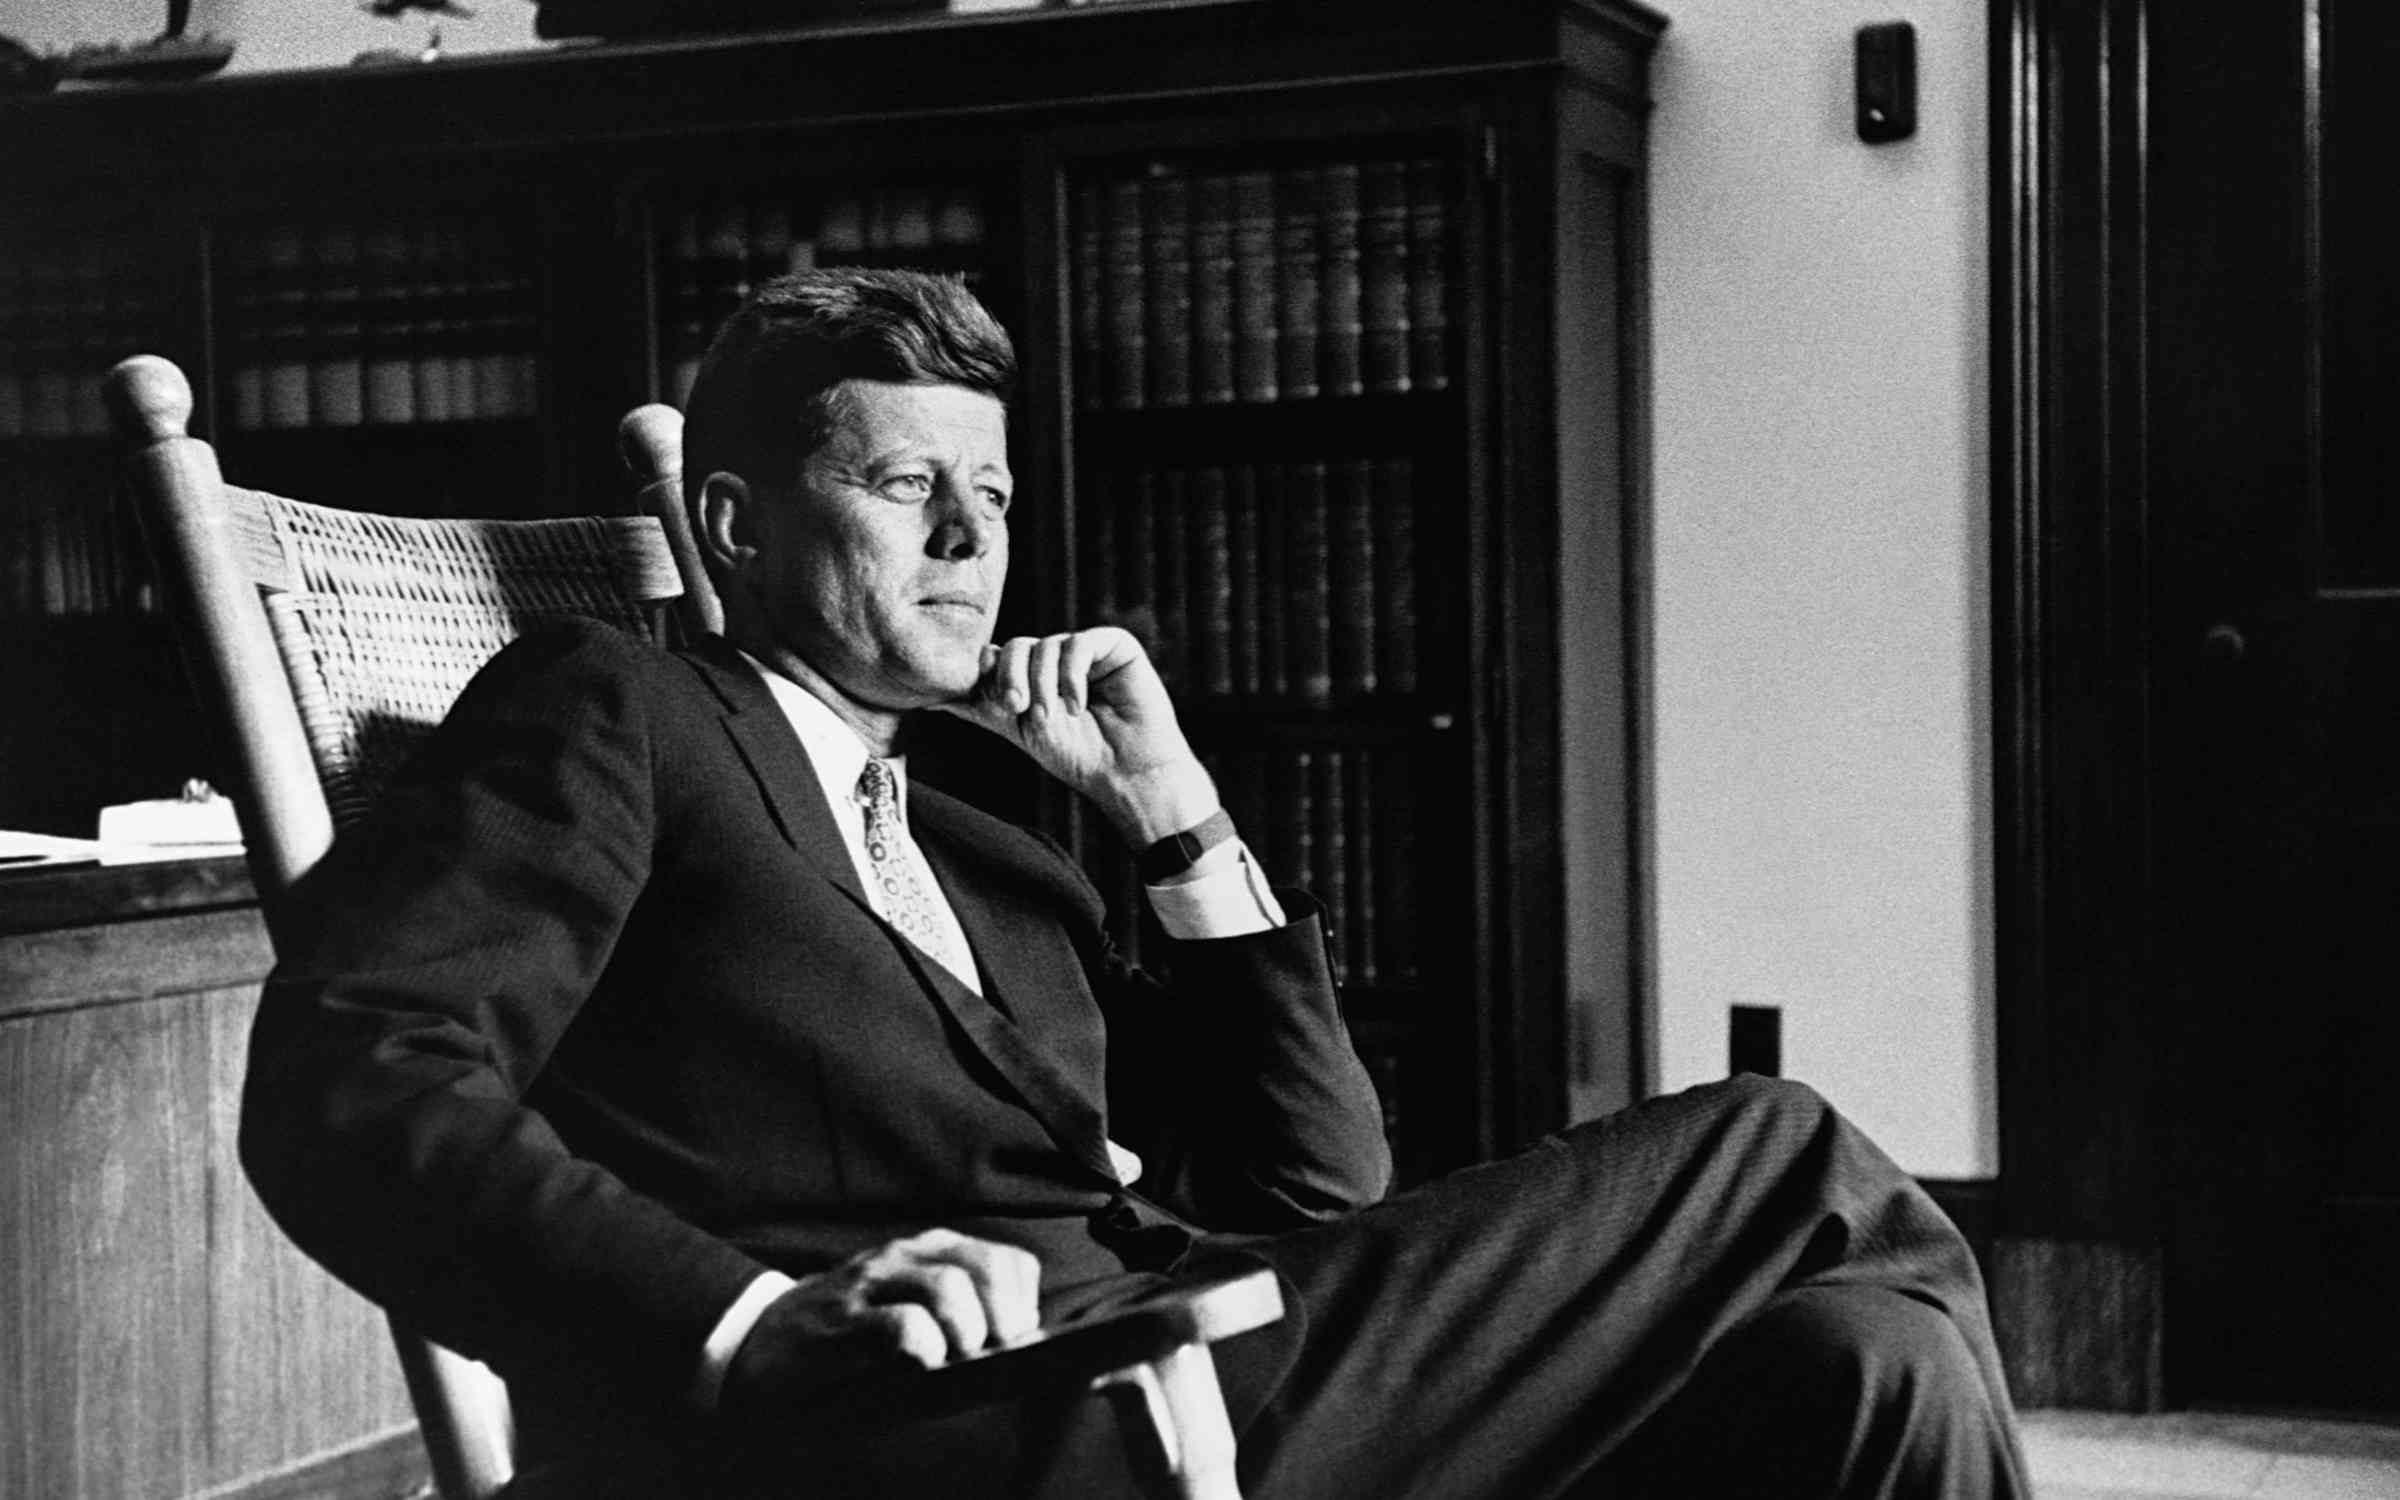 John F. Kennedy sitting in his signature rocking chair in the Oval Office. Creidt: © CORBIS/Corbis via Getty Images.